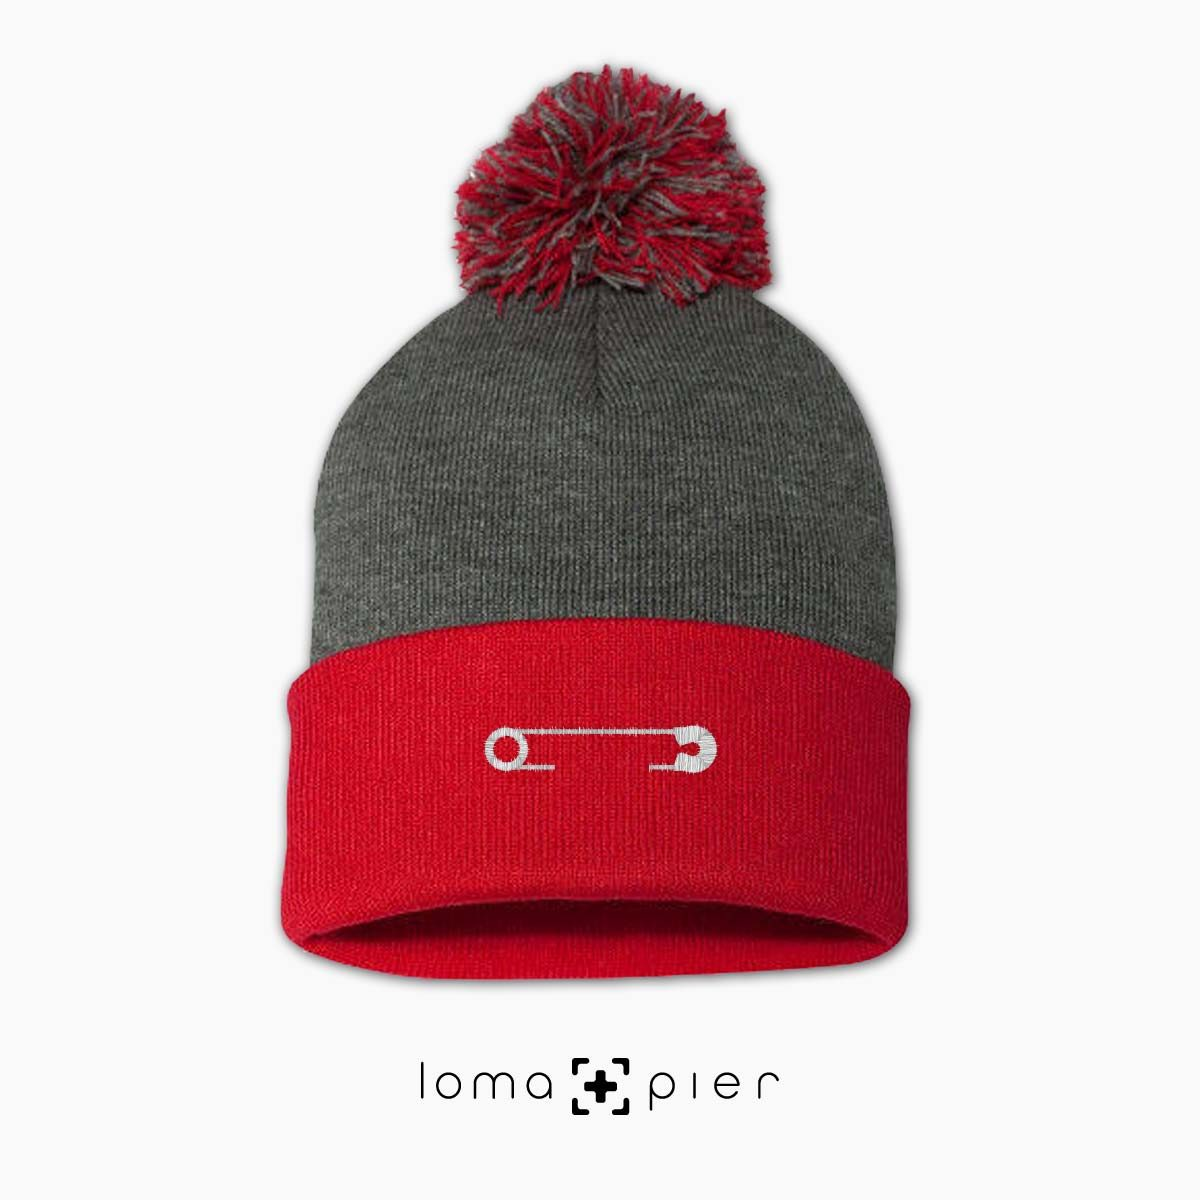 SAFETY PIN icon embroidered on a heather grey and red pom pom beanie with white thread by loma+pier hat store